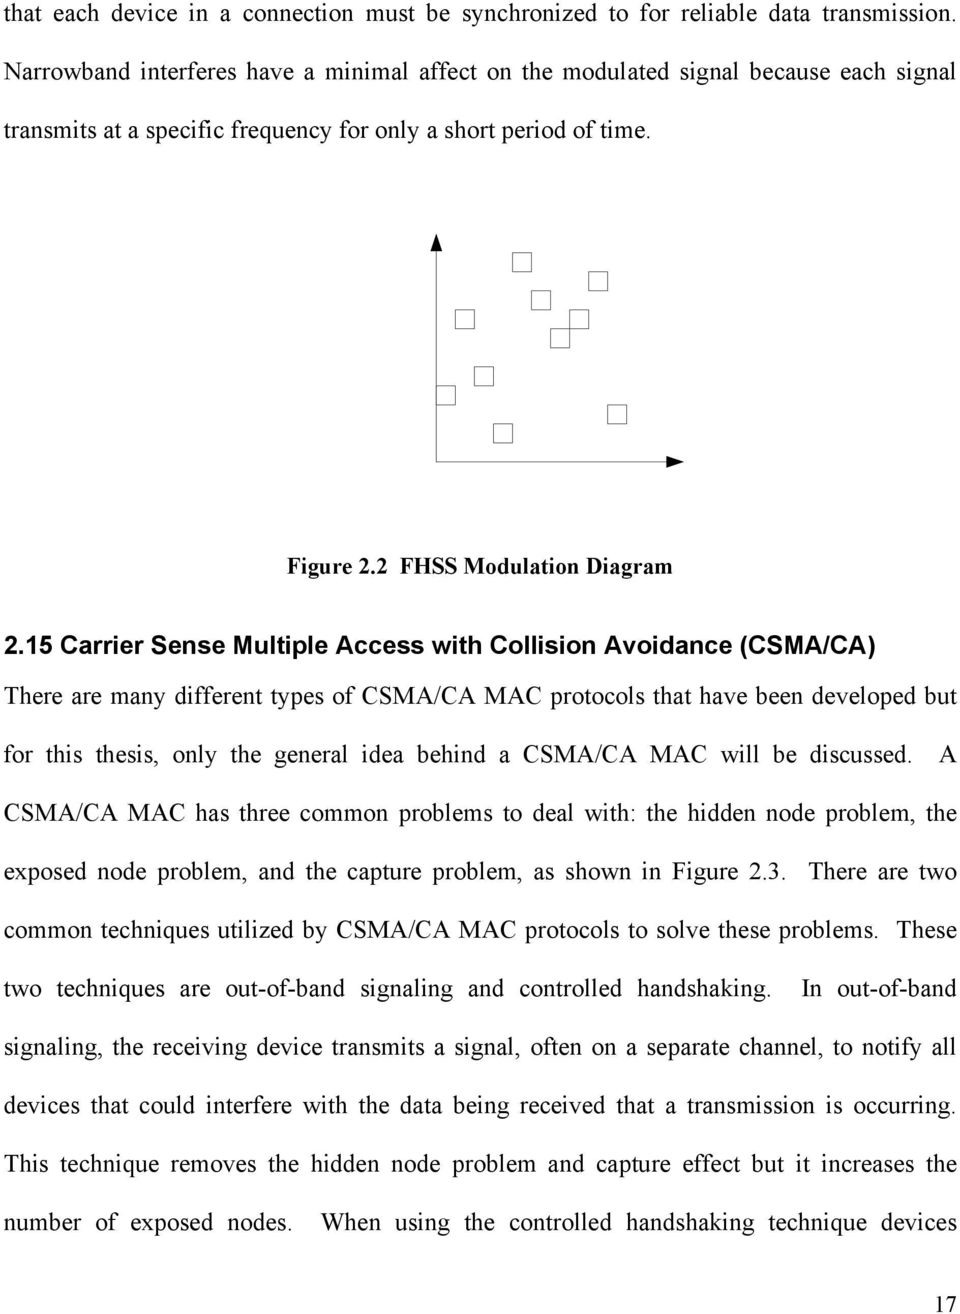 15 Carrier Sense Multiple Access with Collision Avoidance (CSMA/CA) There are many different types of CSMA/CA MAC protocols that have been developed but for this thesis, only the general idea behind